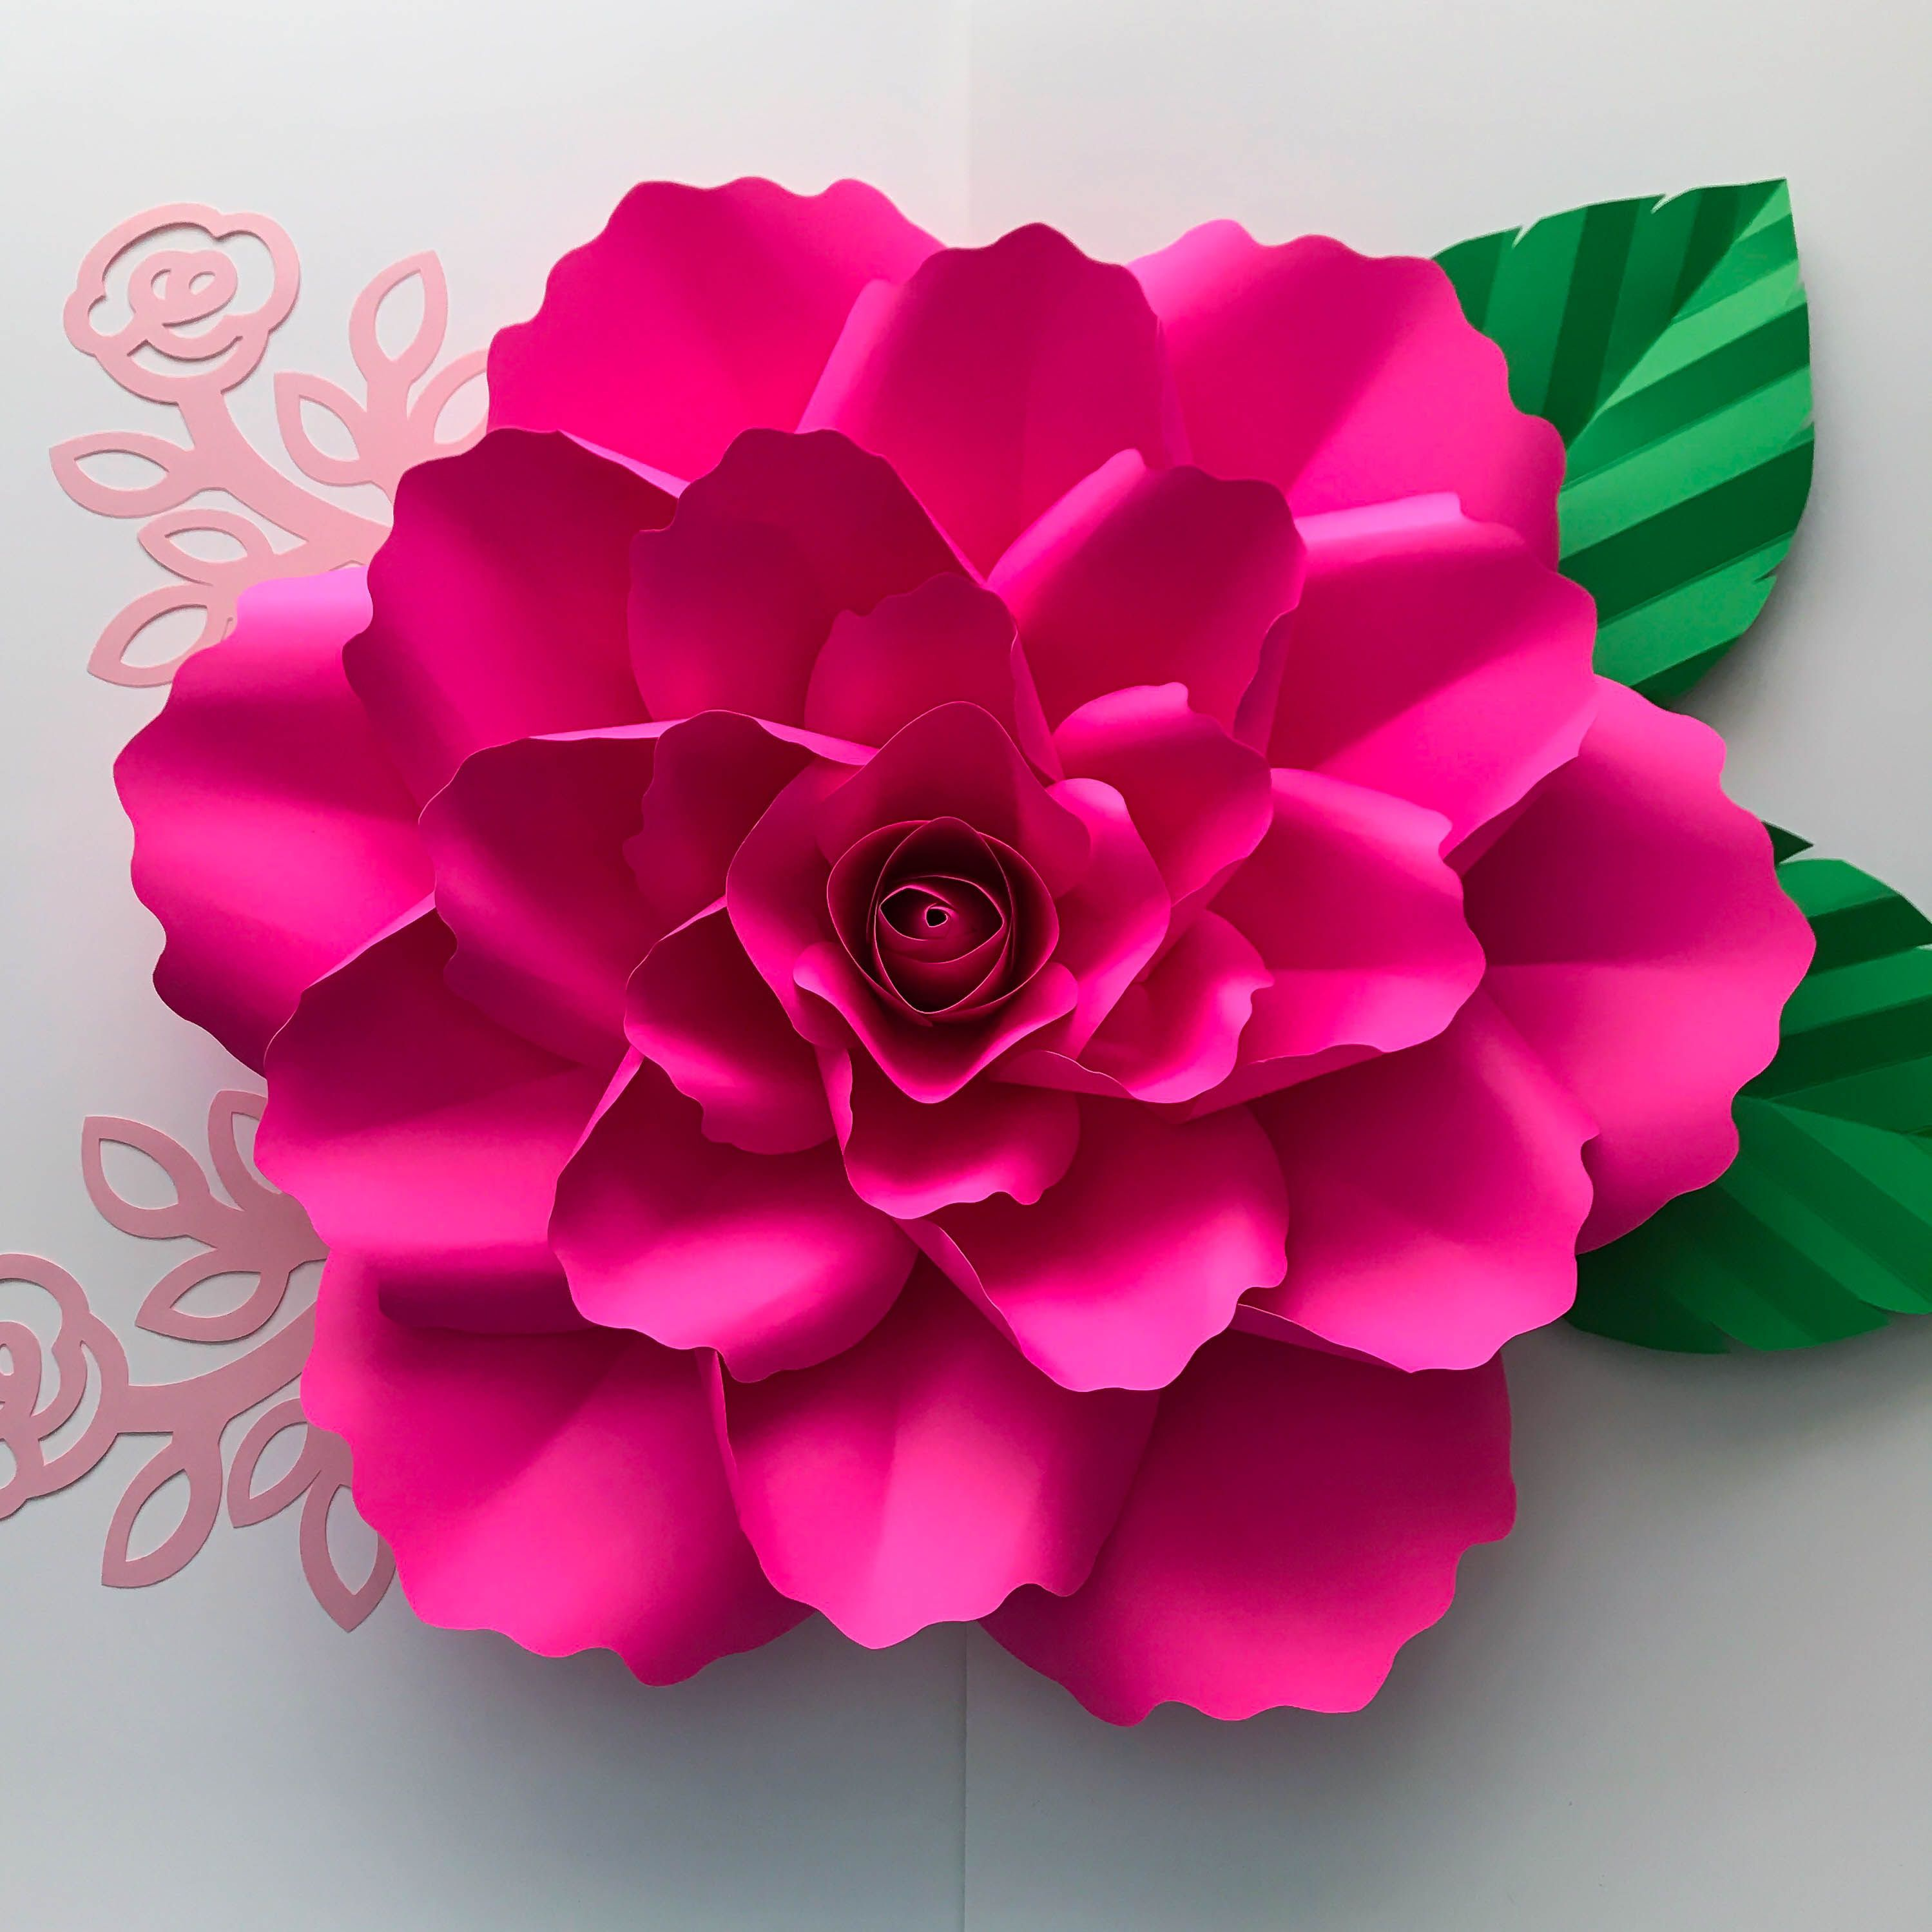 Pin on Giant Paper Flower Walls